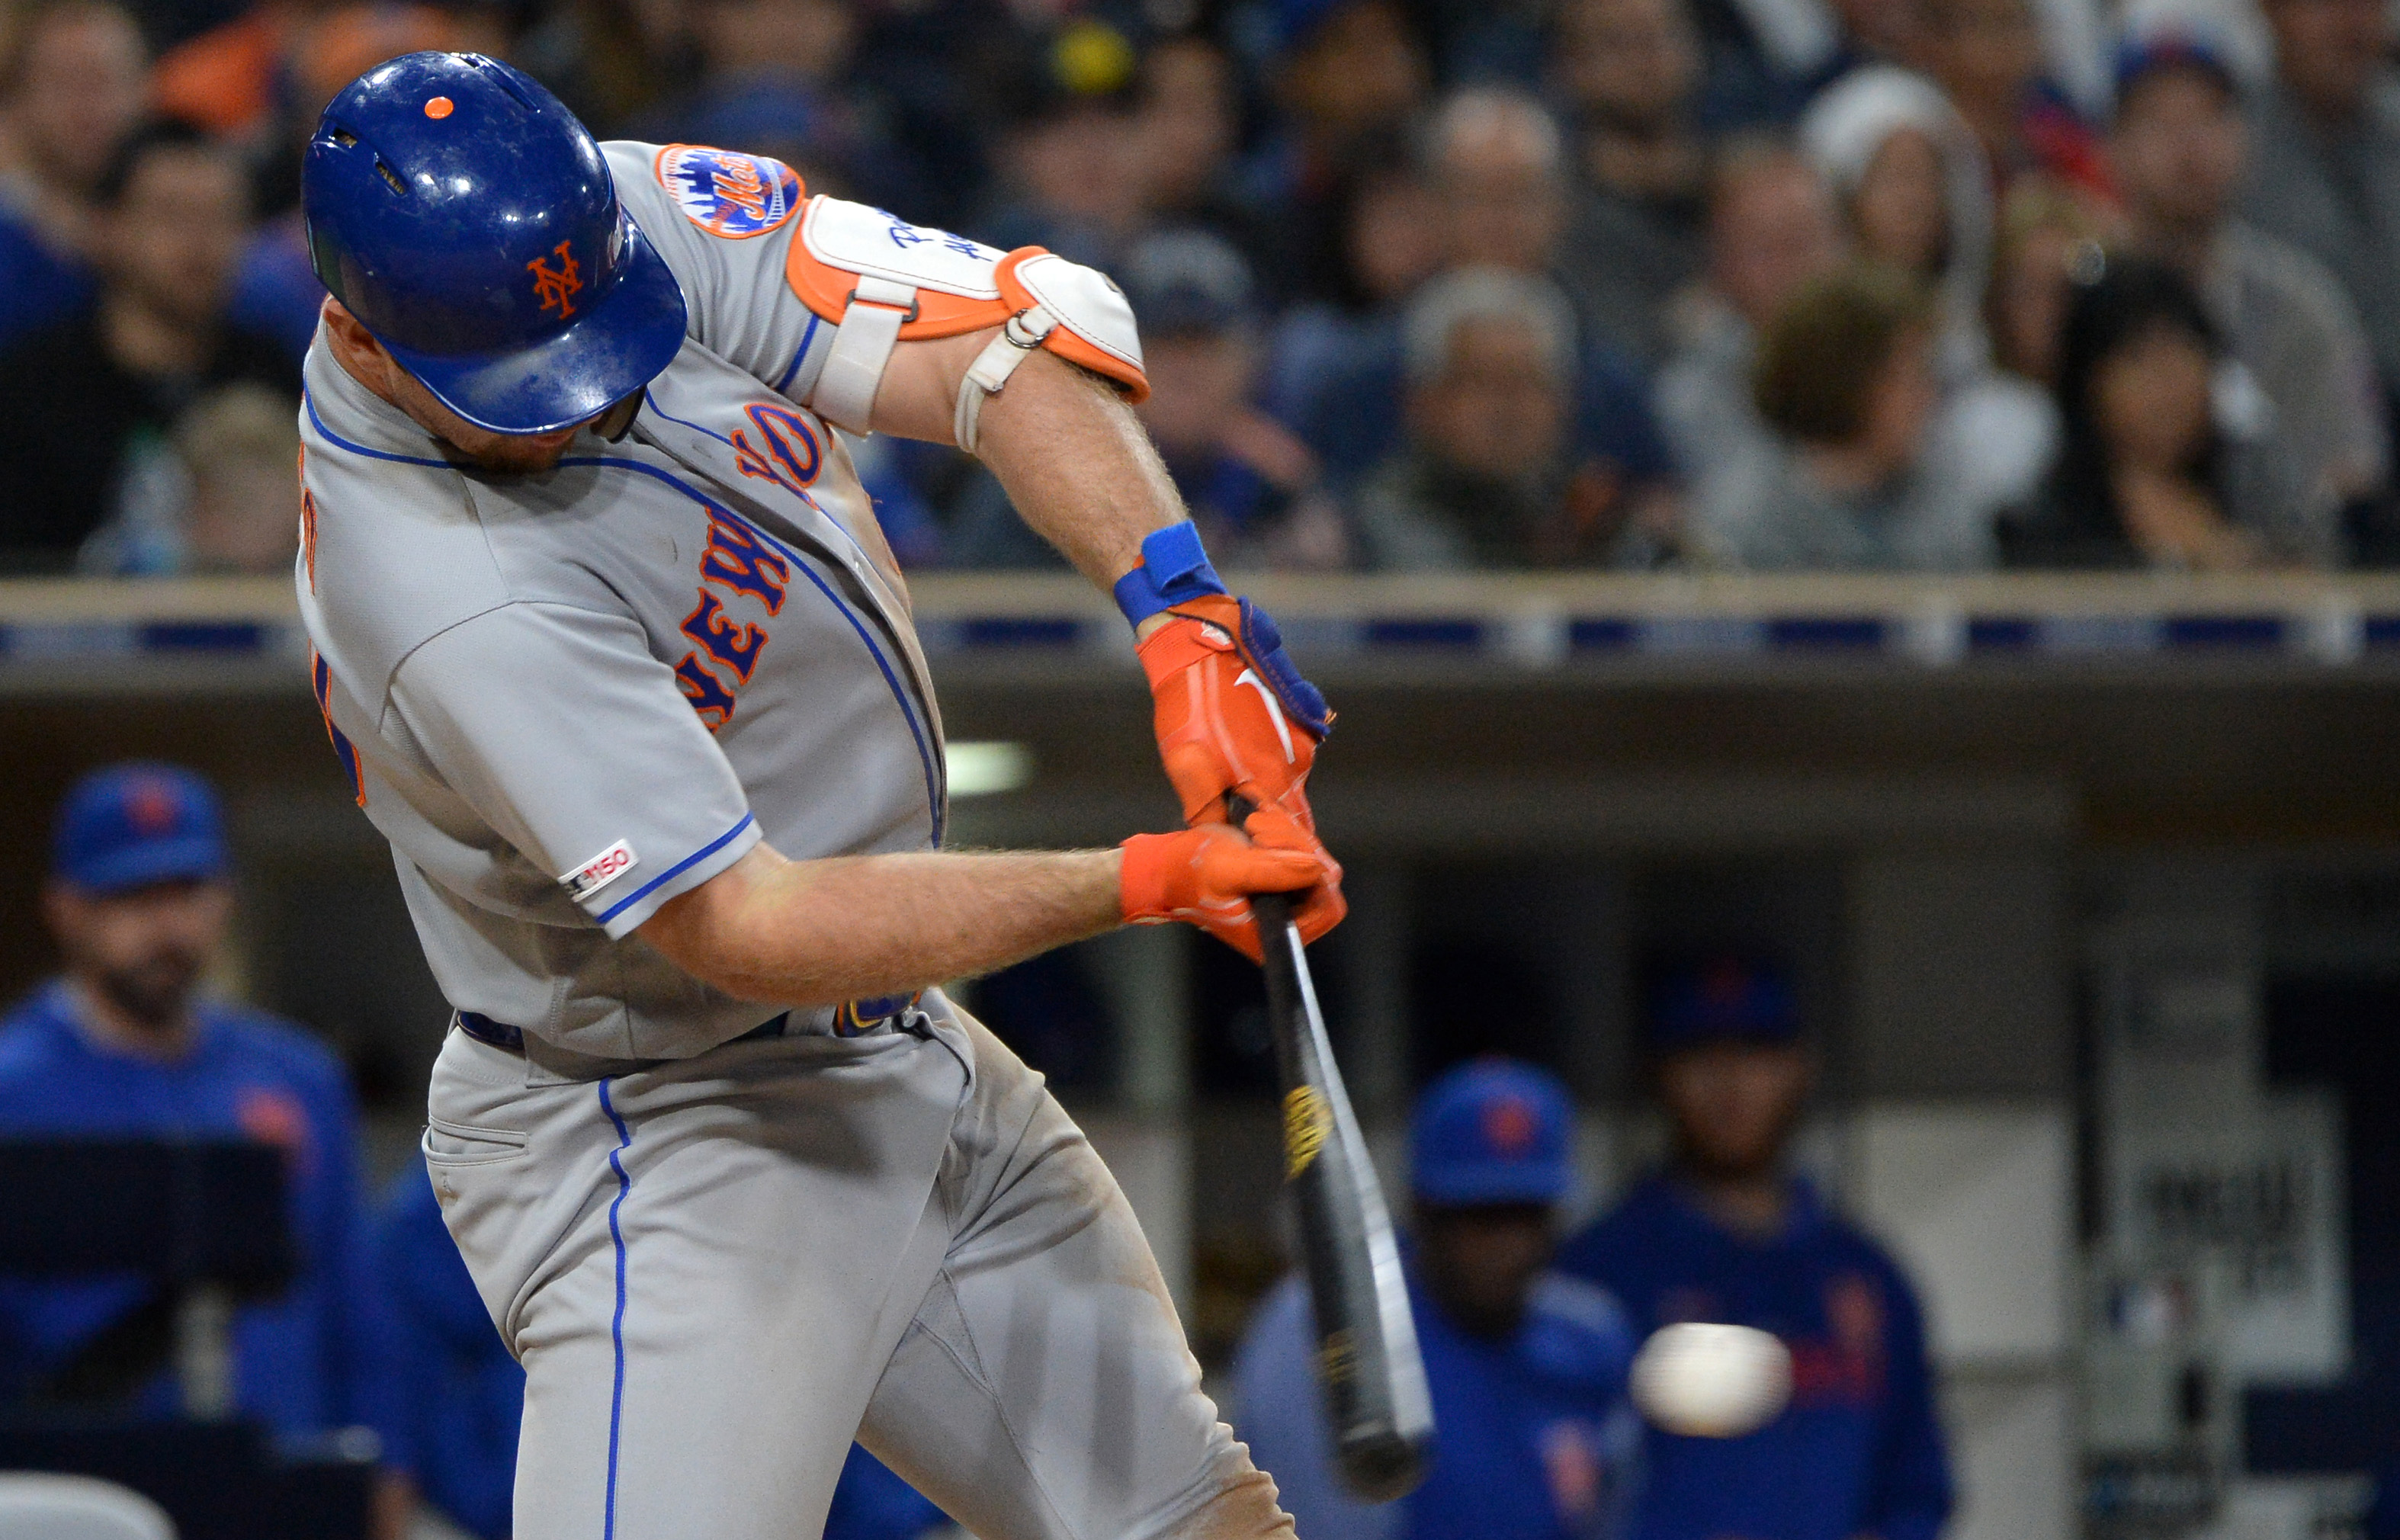 Pete Alonso hits a home run for the ages in San Diego (Video)